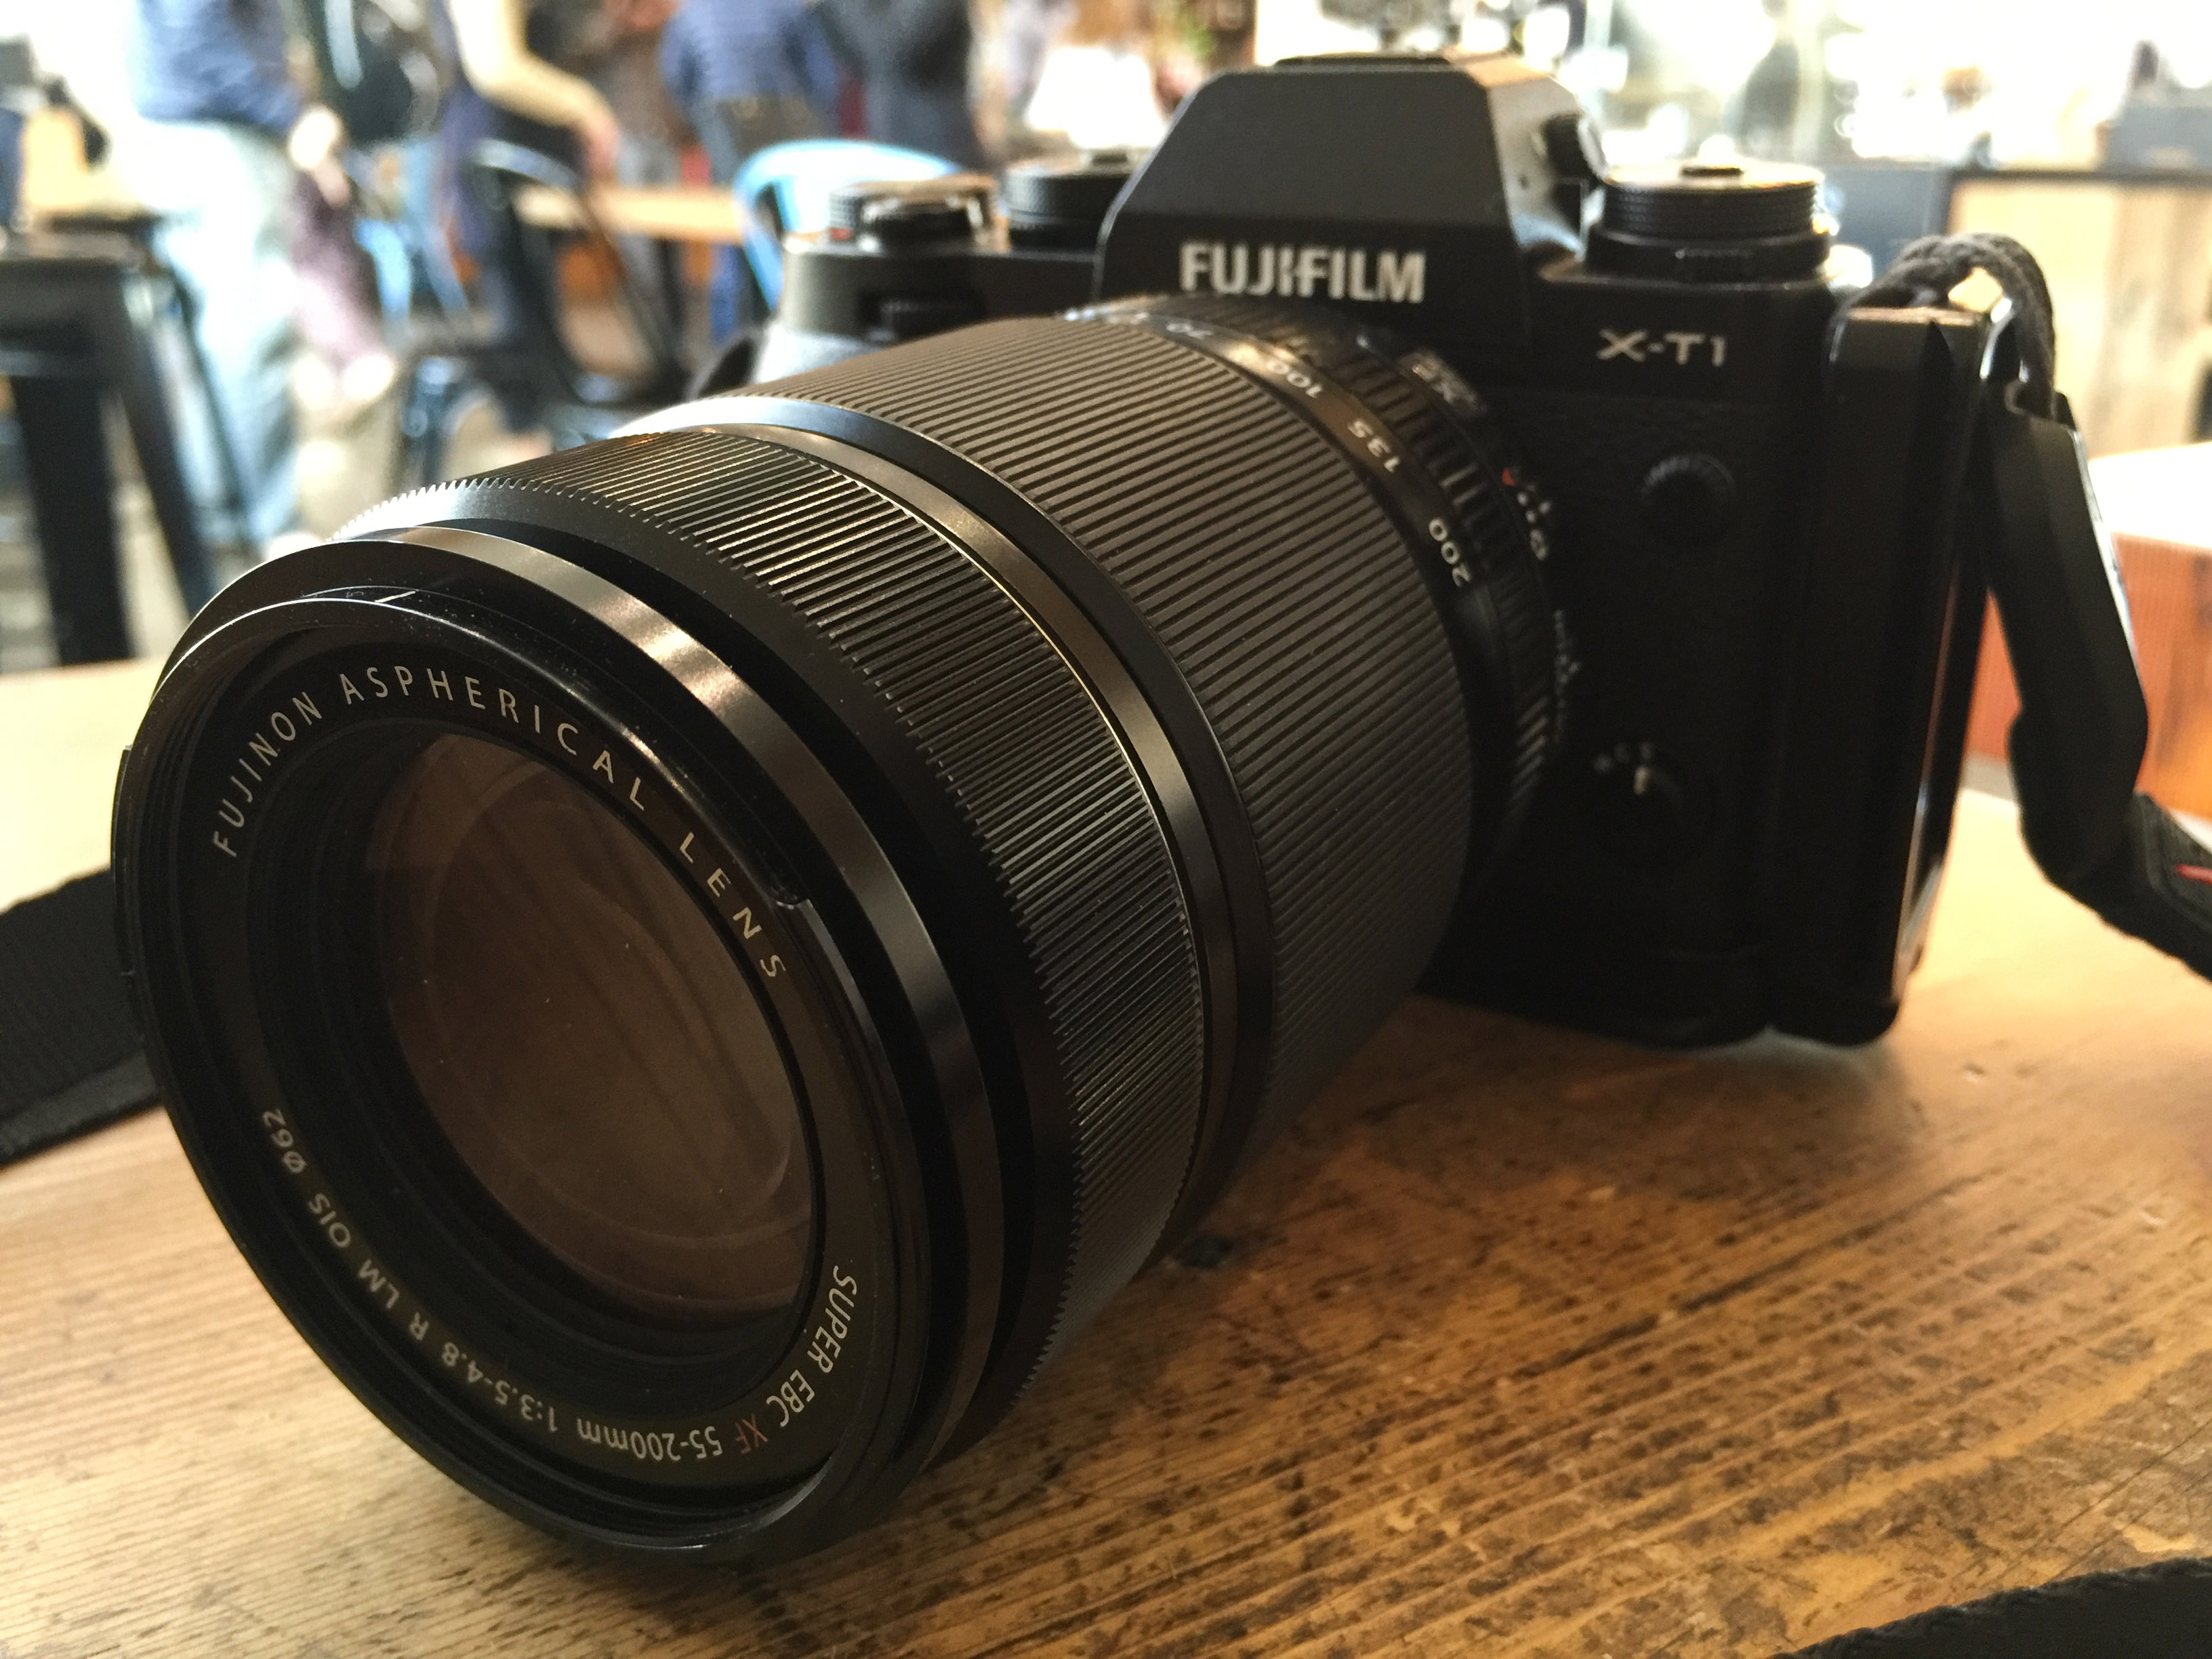 Fuji X-T1 front with 55-200mm lens